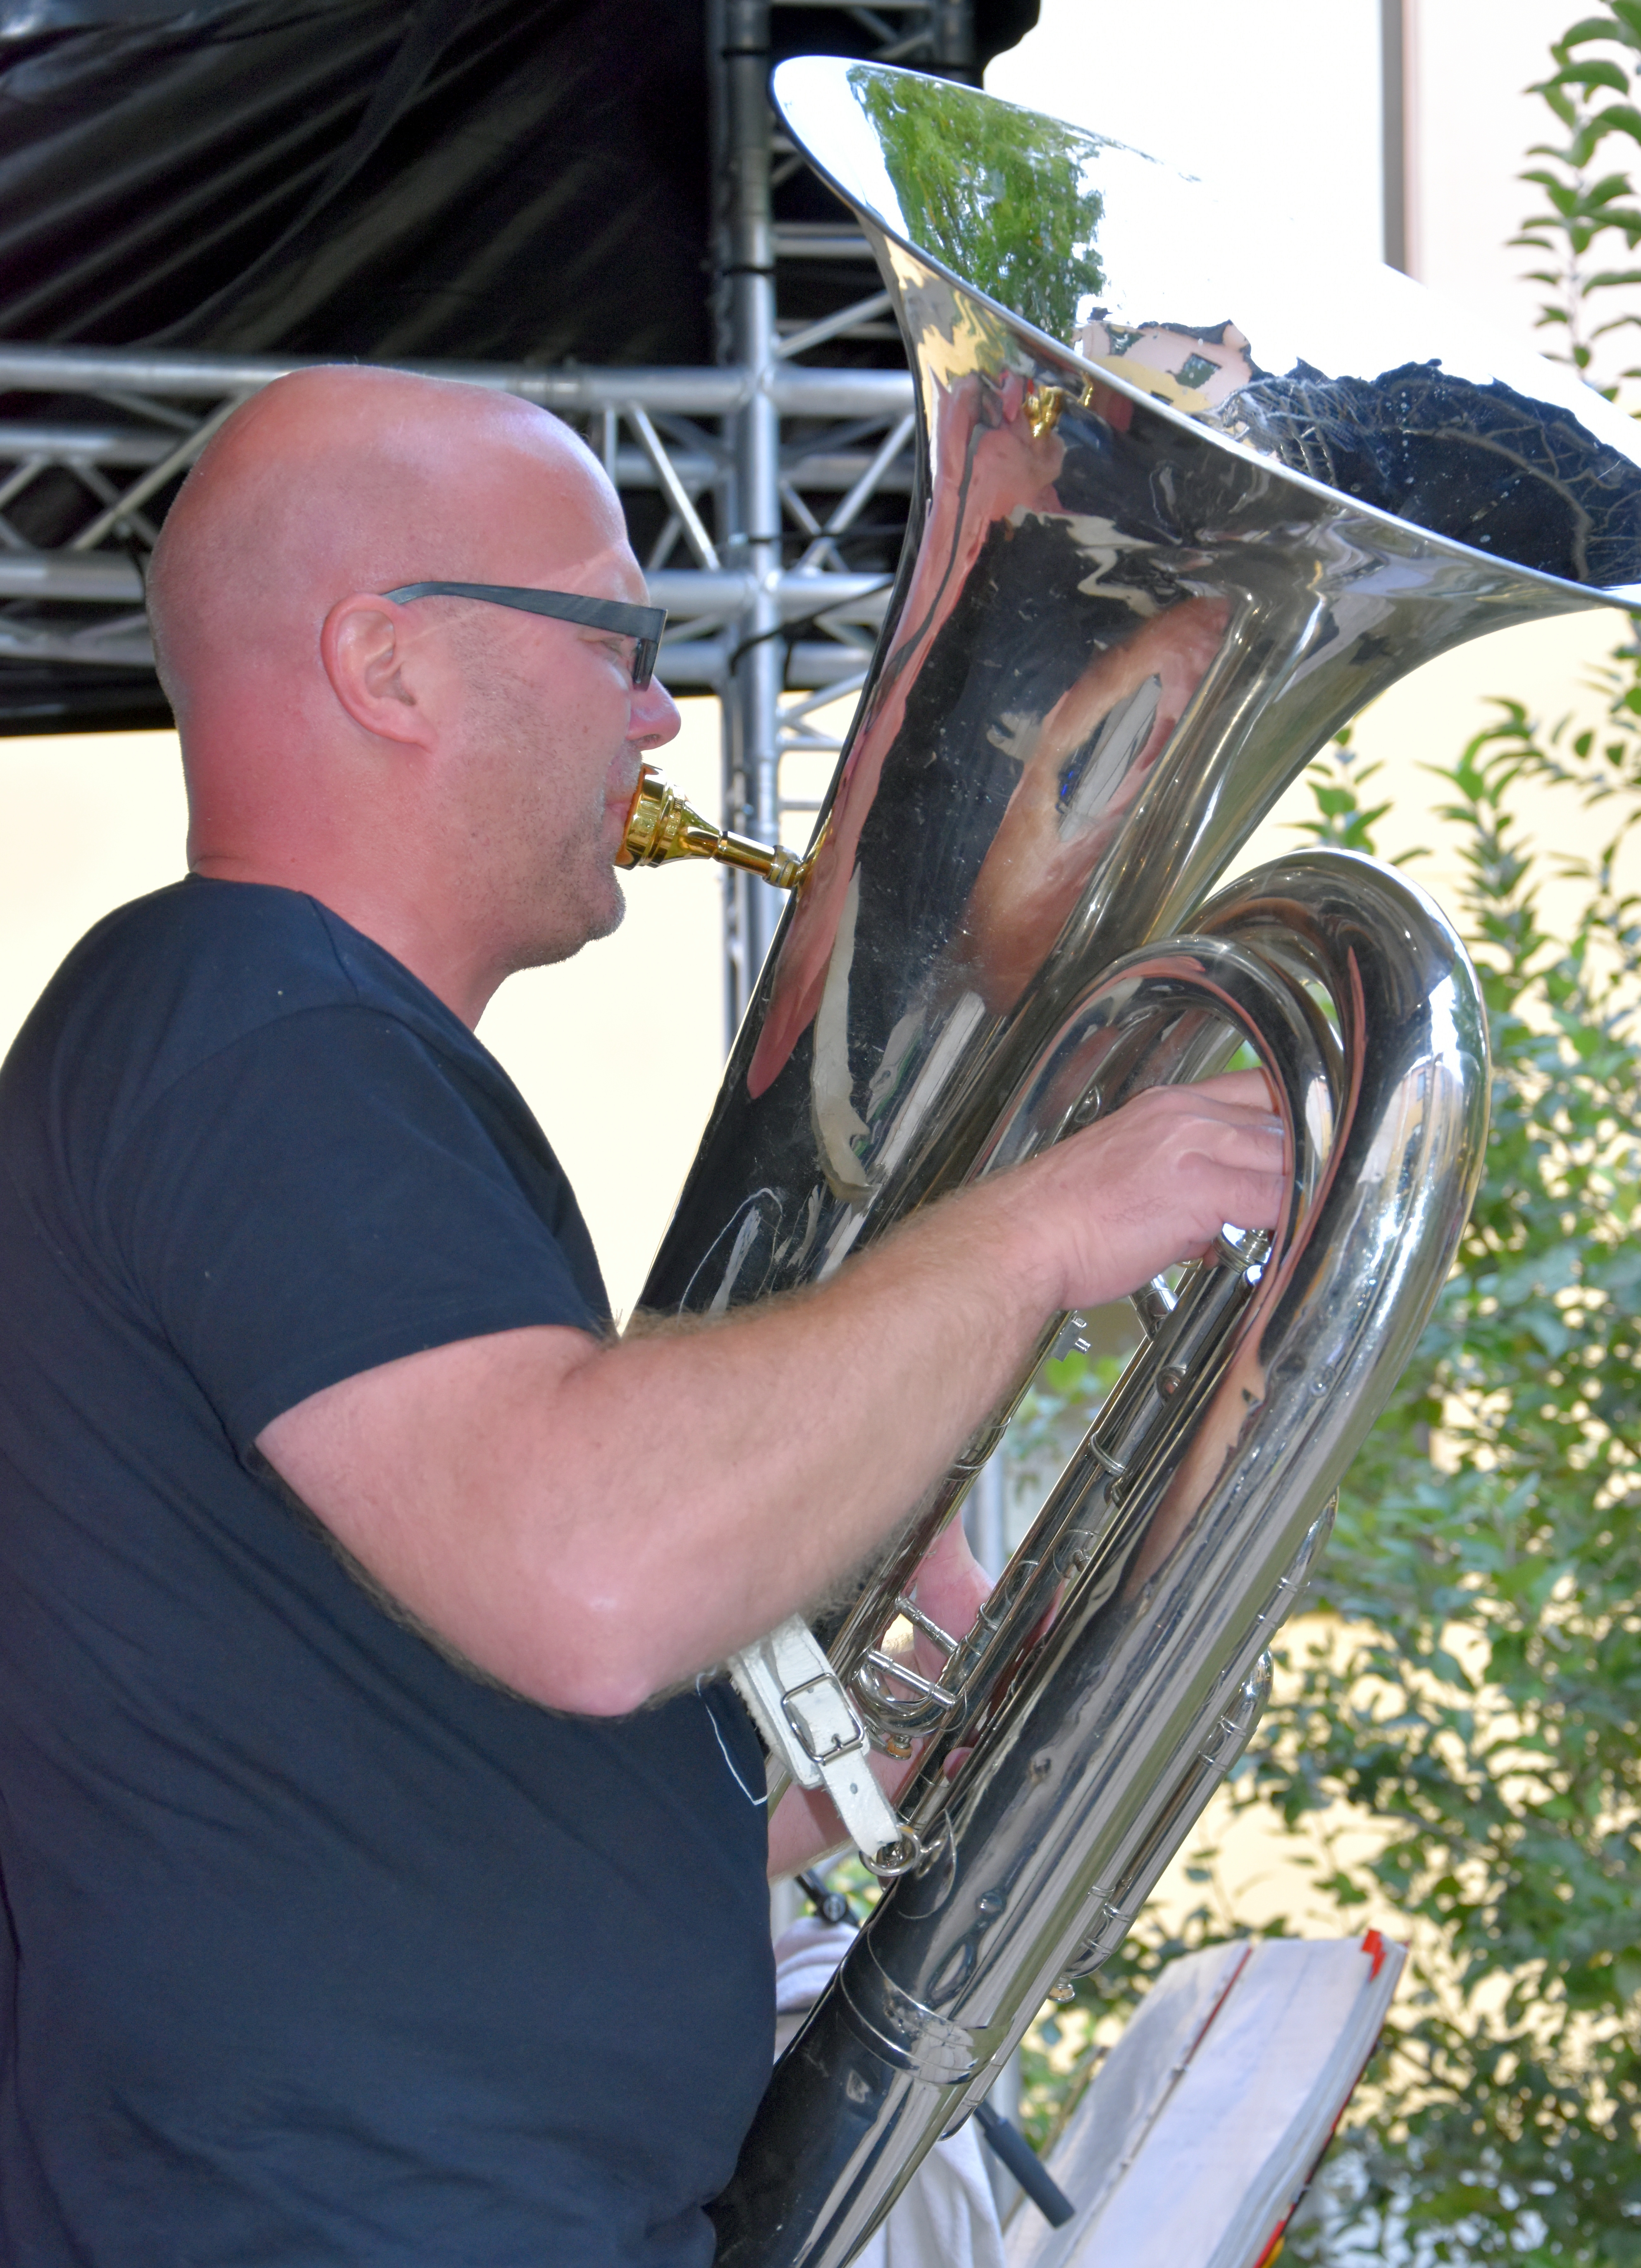 Tuba von Railroad Celebration. Foto: Senger